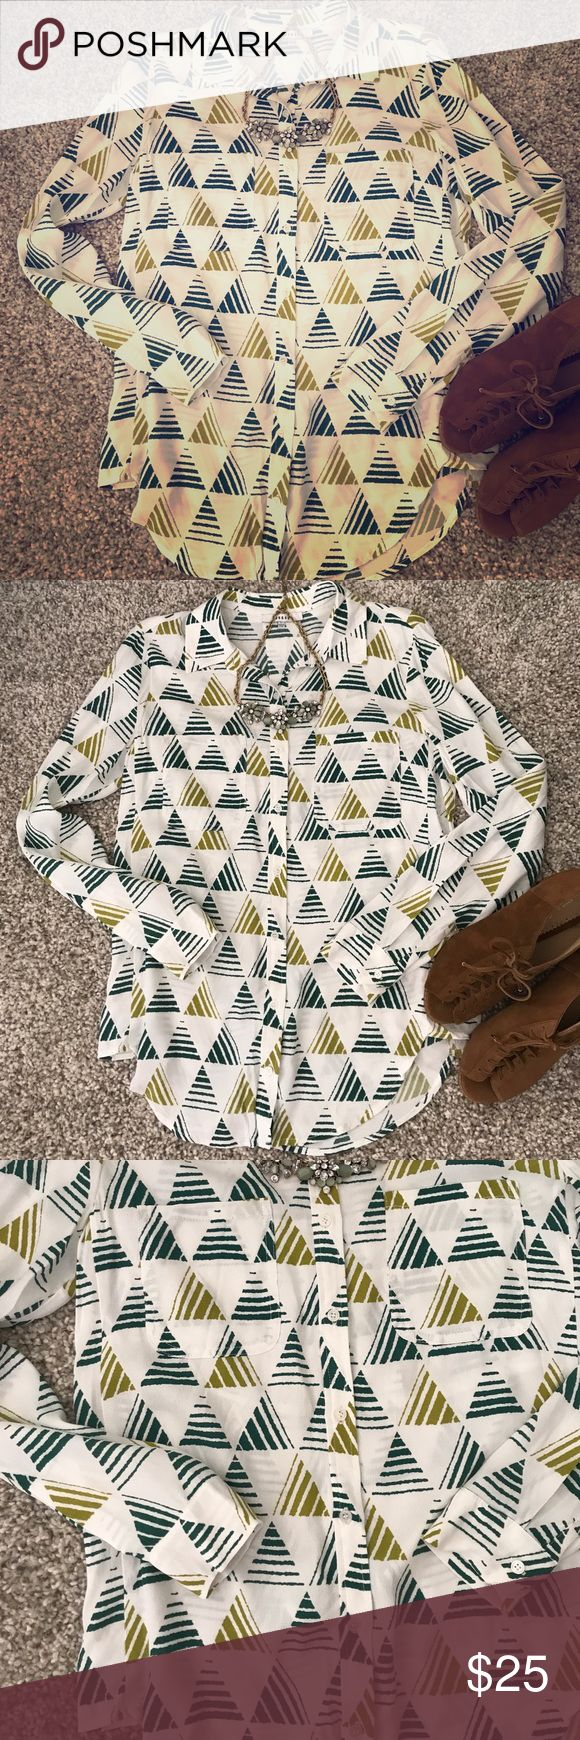 Ro&De white and green patterned blouse This is a new without nags top from Anthropologie. It is white with a green triangle pattern. The top is a size small and is so cute on! Anthropologie Tops Button Down Shirts